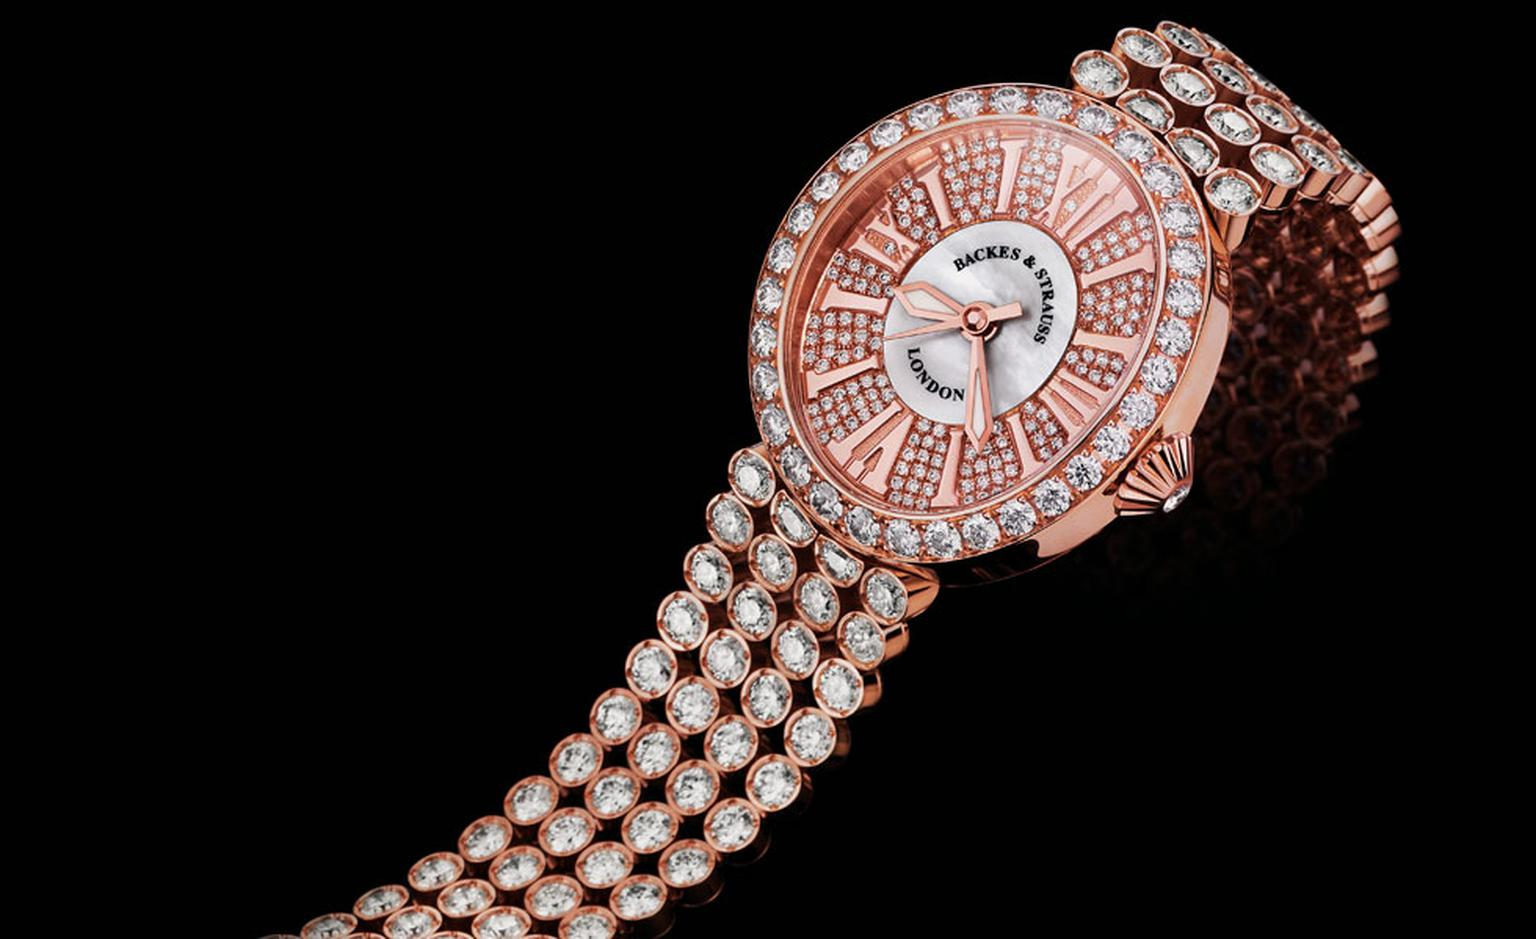 Backes & Strauss Regent Princess in rose gold with almost 23 carats of ideal cut diamonds.